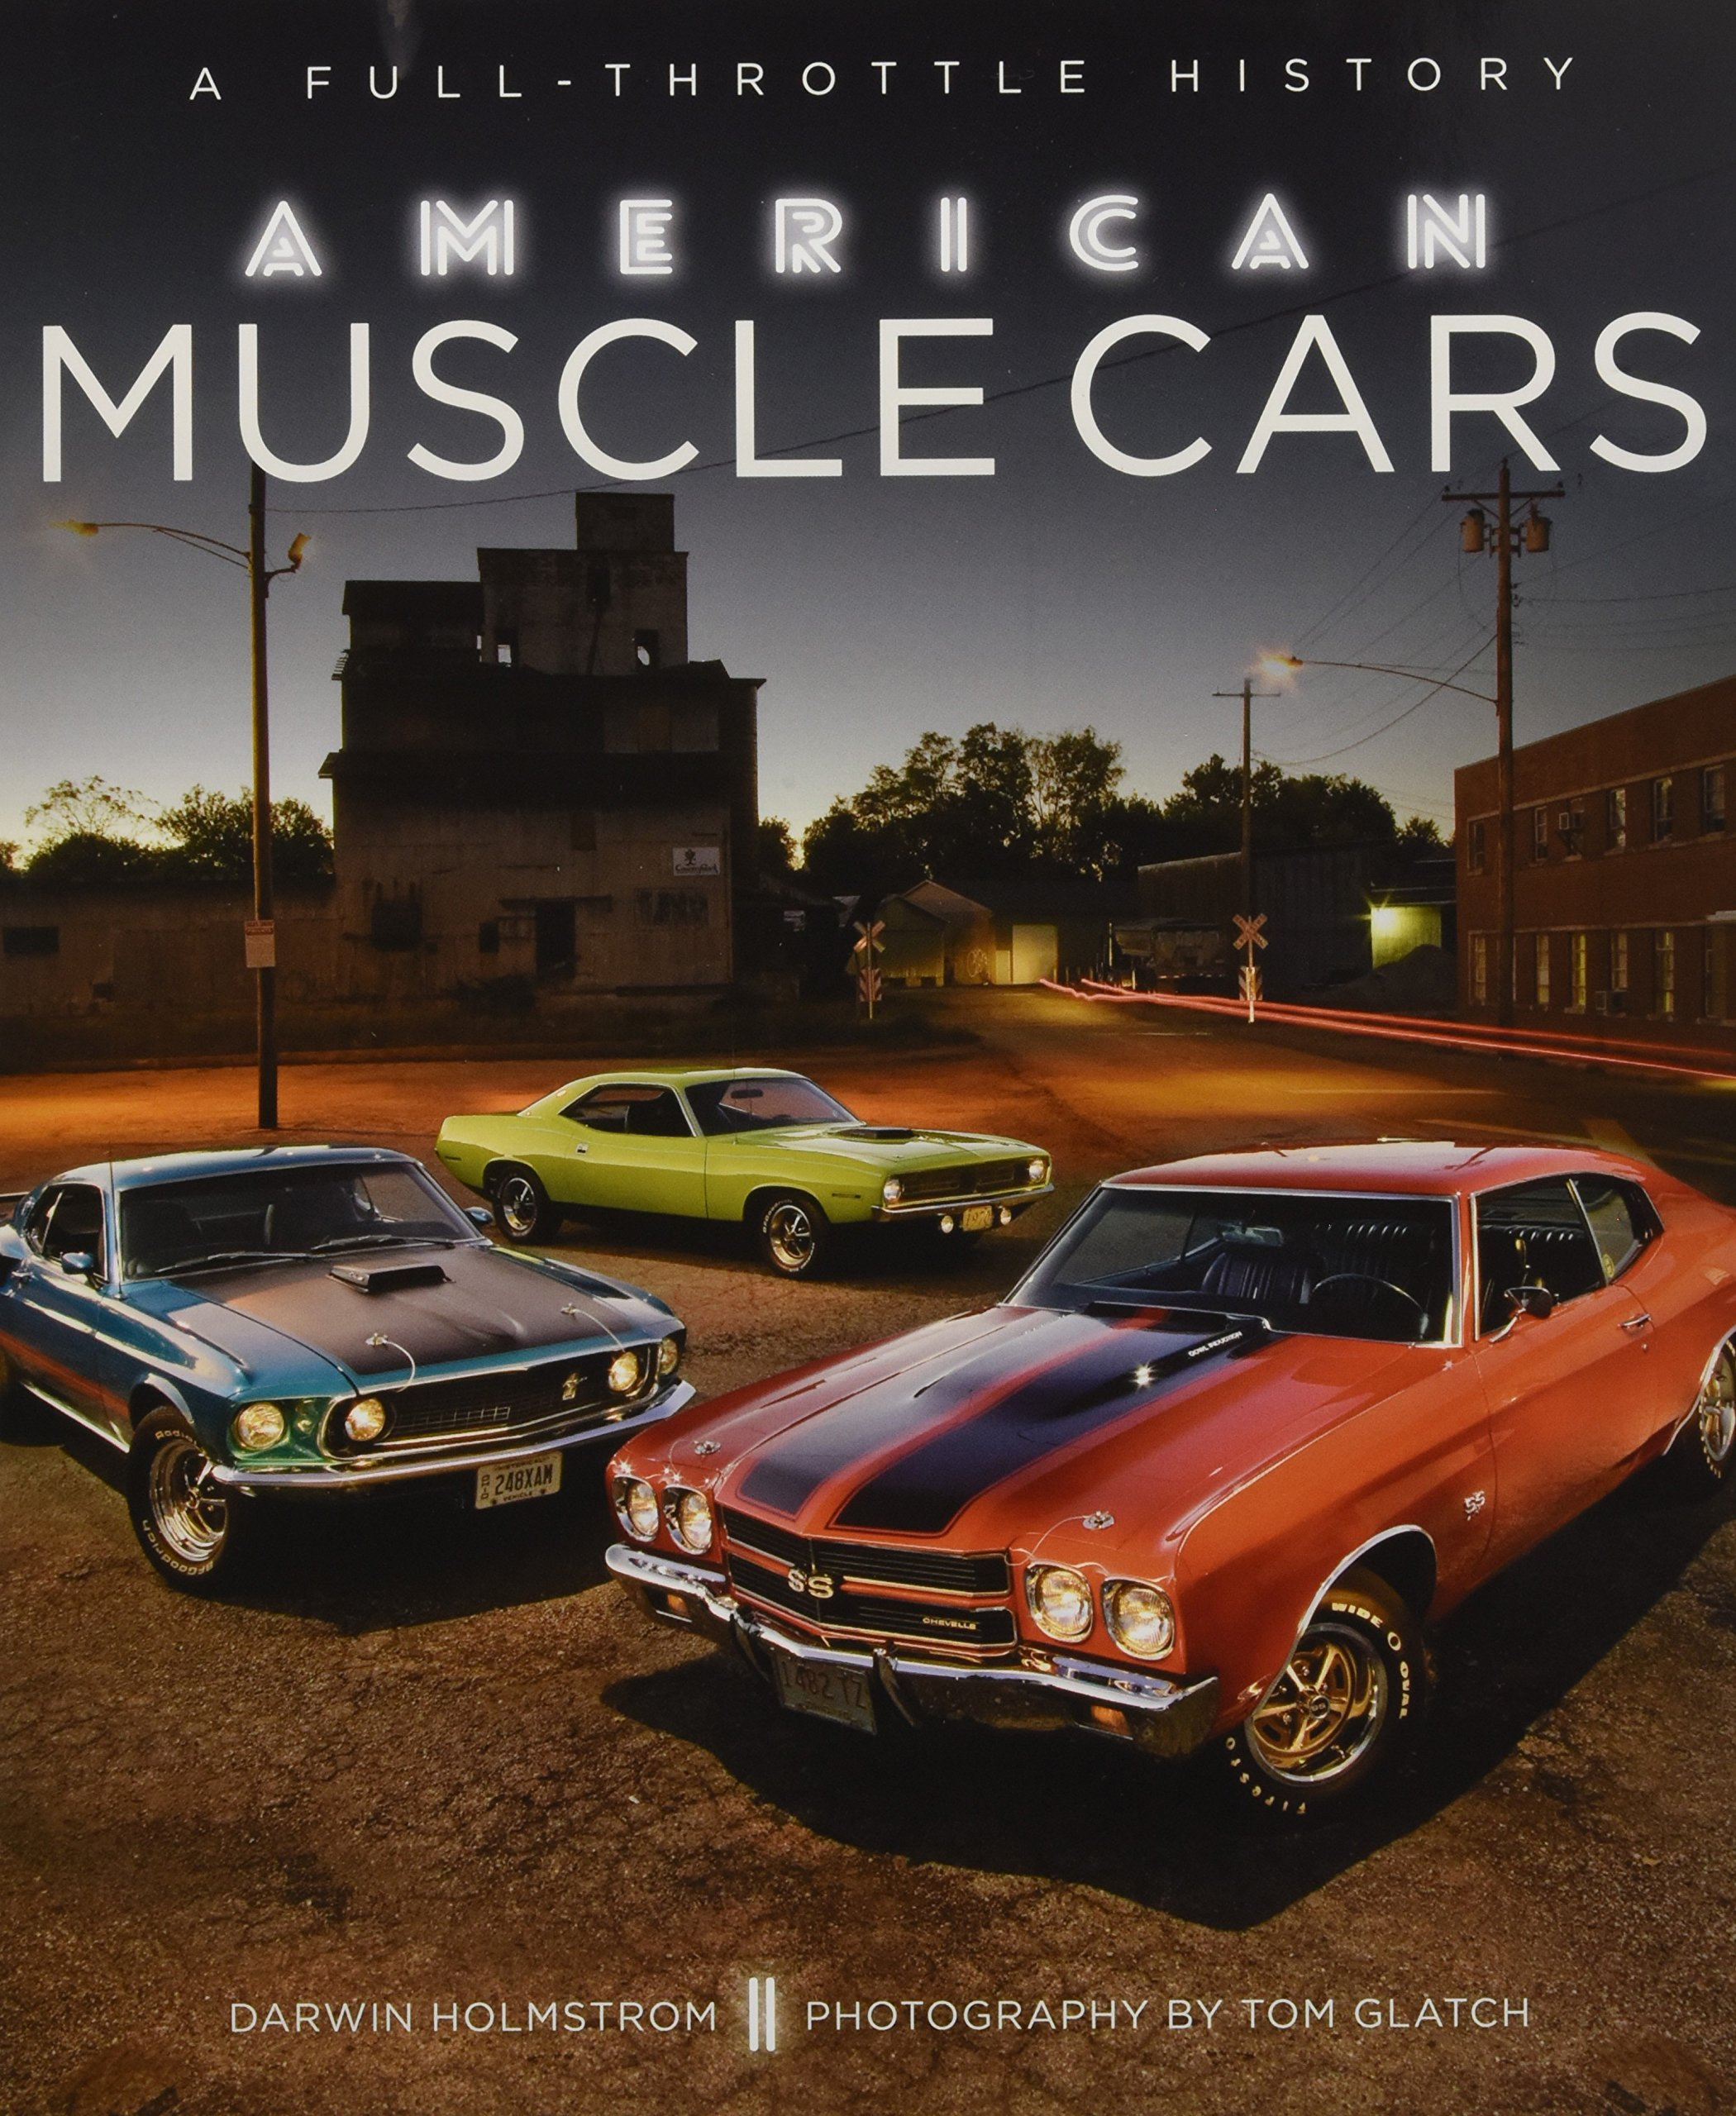 American Muscle Cars A Full Throttle History Darwin Holmstrom